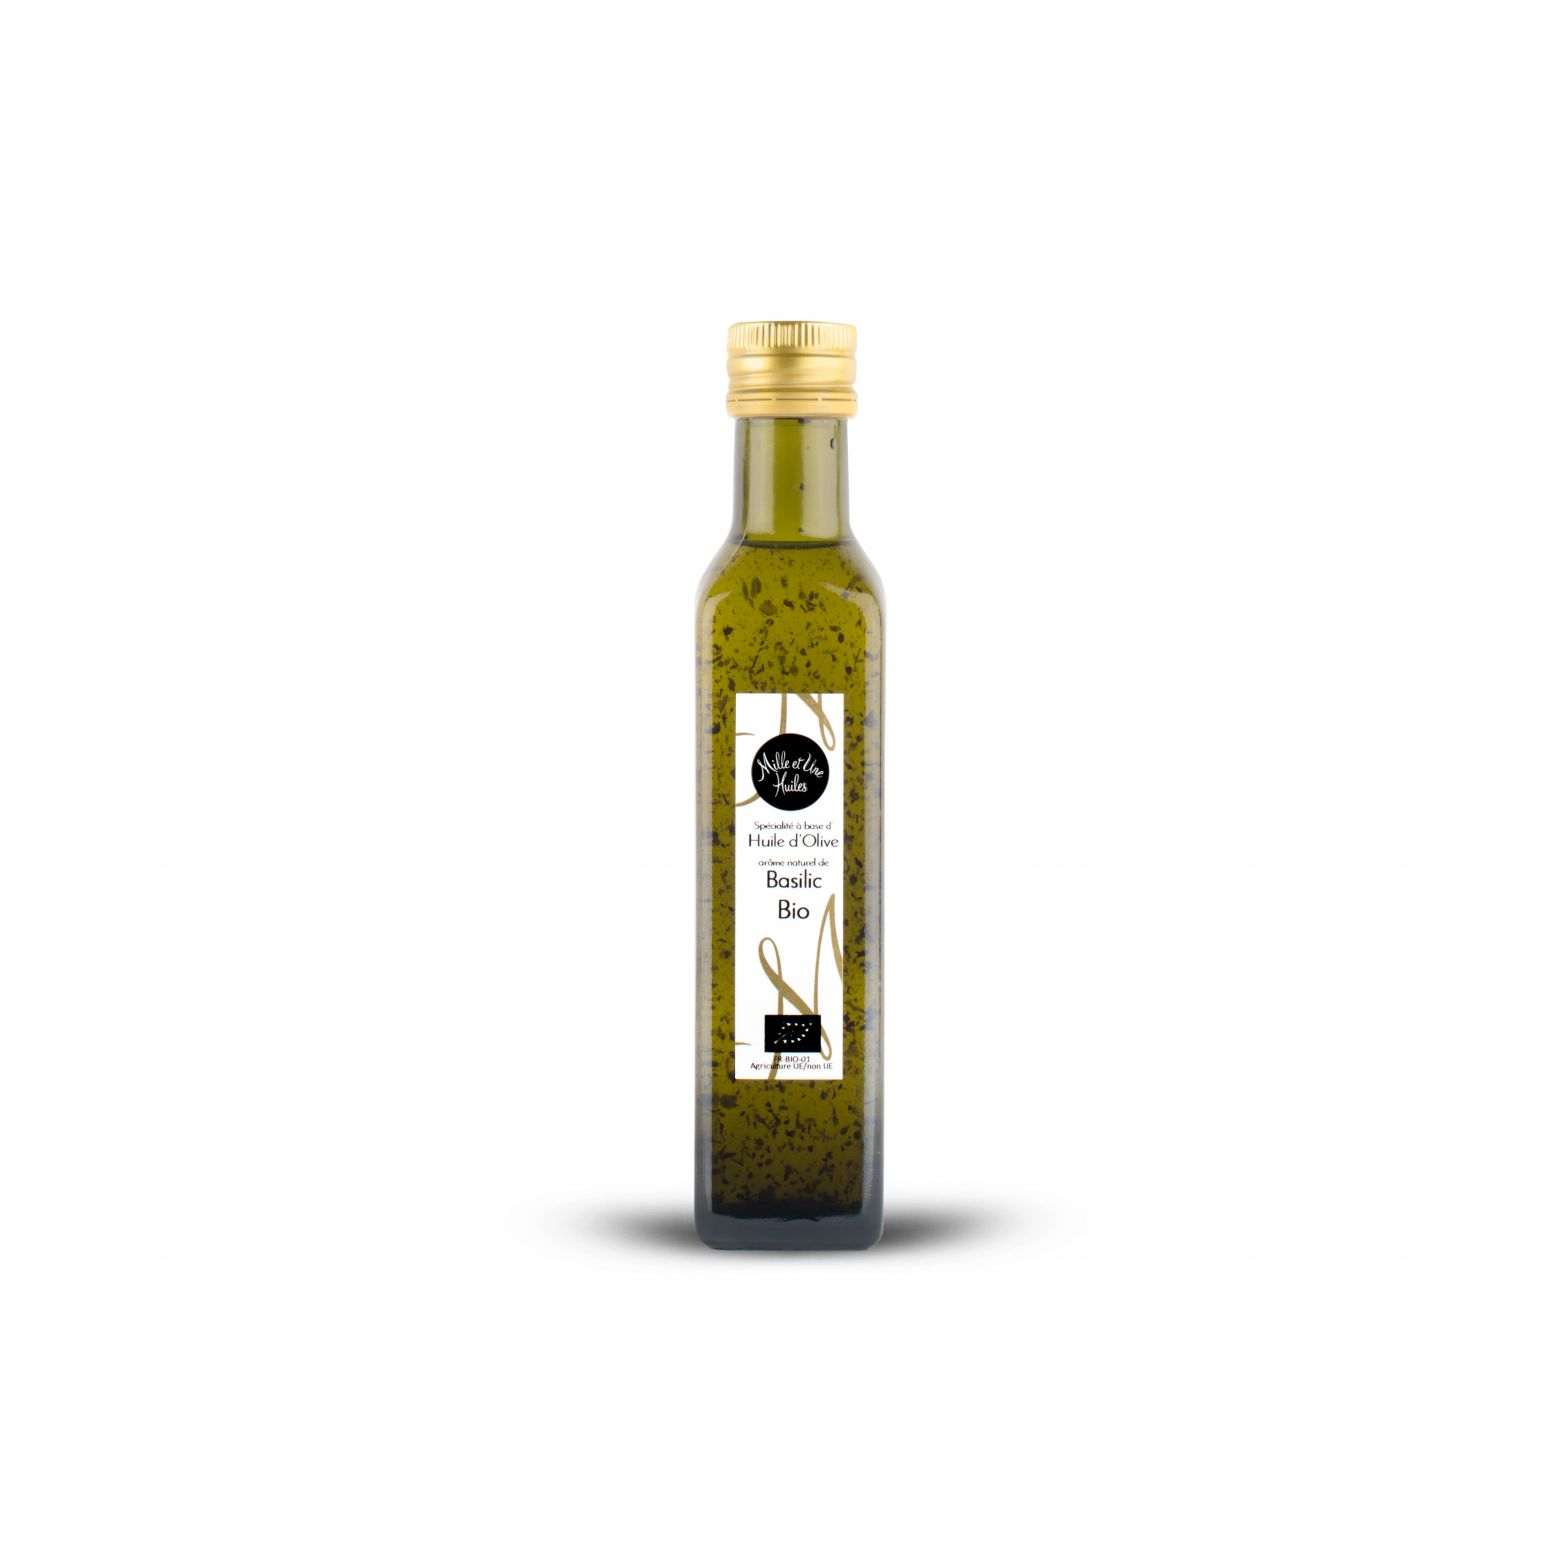 Basil-flavoured olive oil dressing, organic